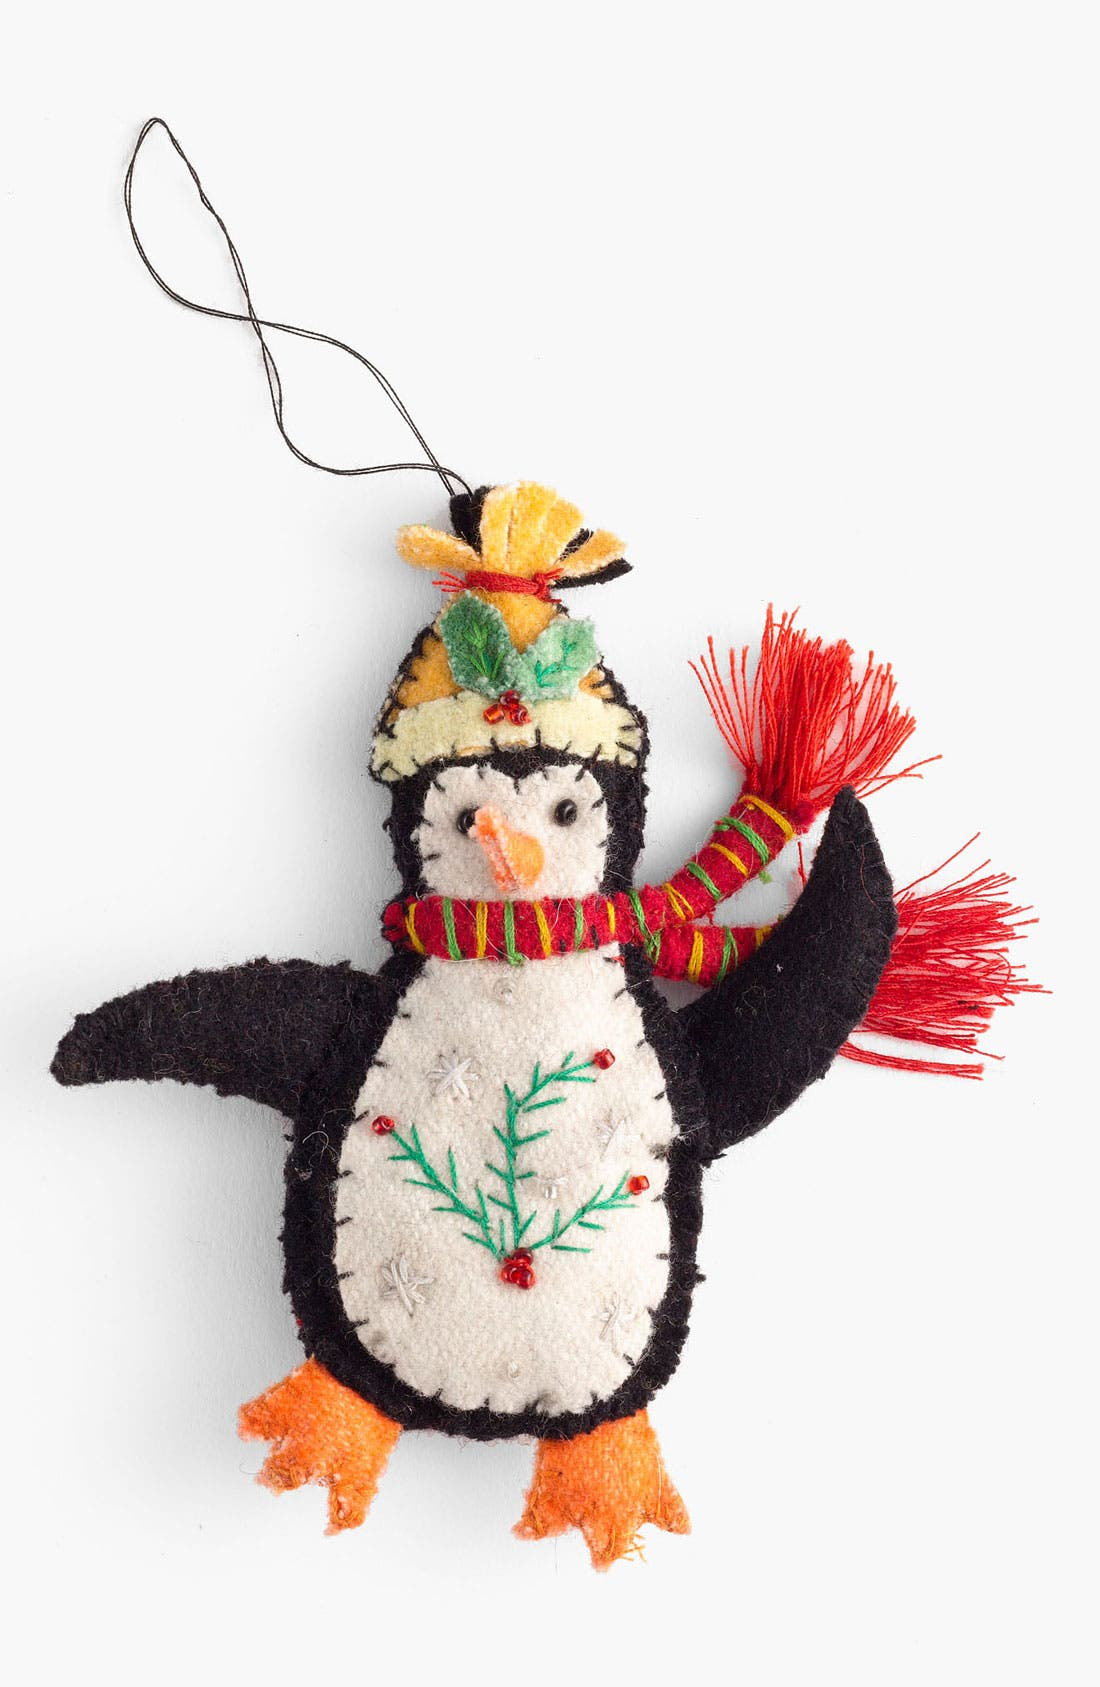 Alternate Image 1 Selected - New World Arts 'Puffy Penguin' Ornament